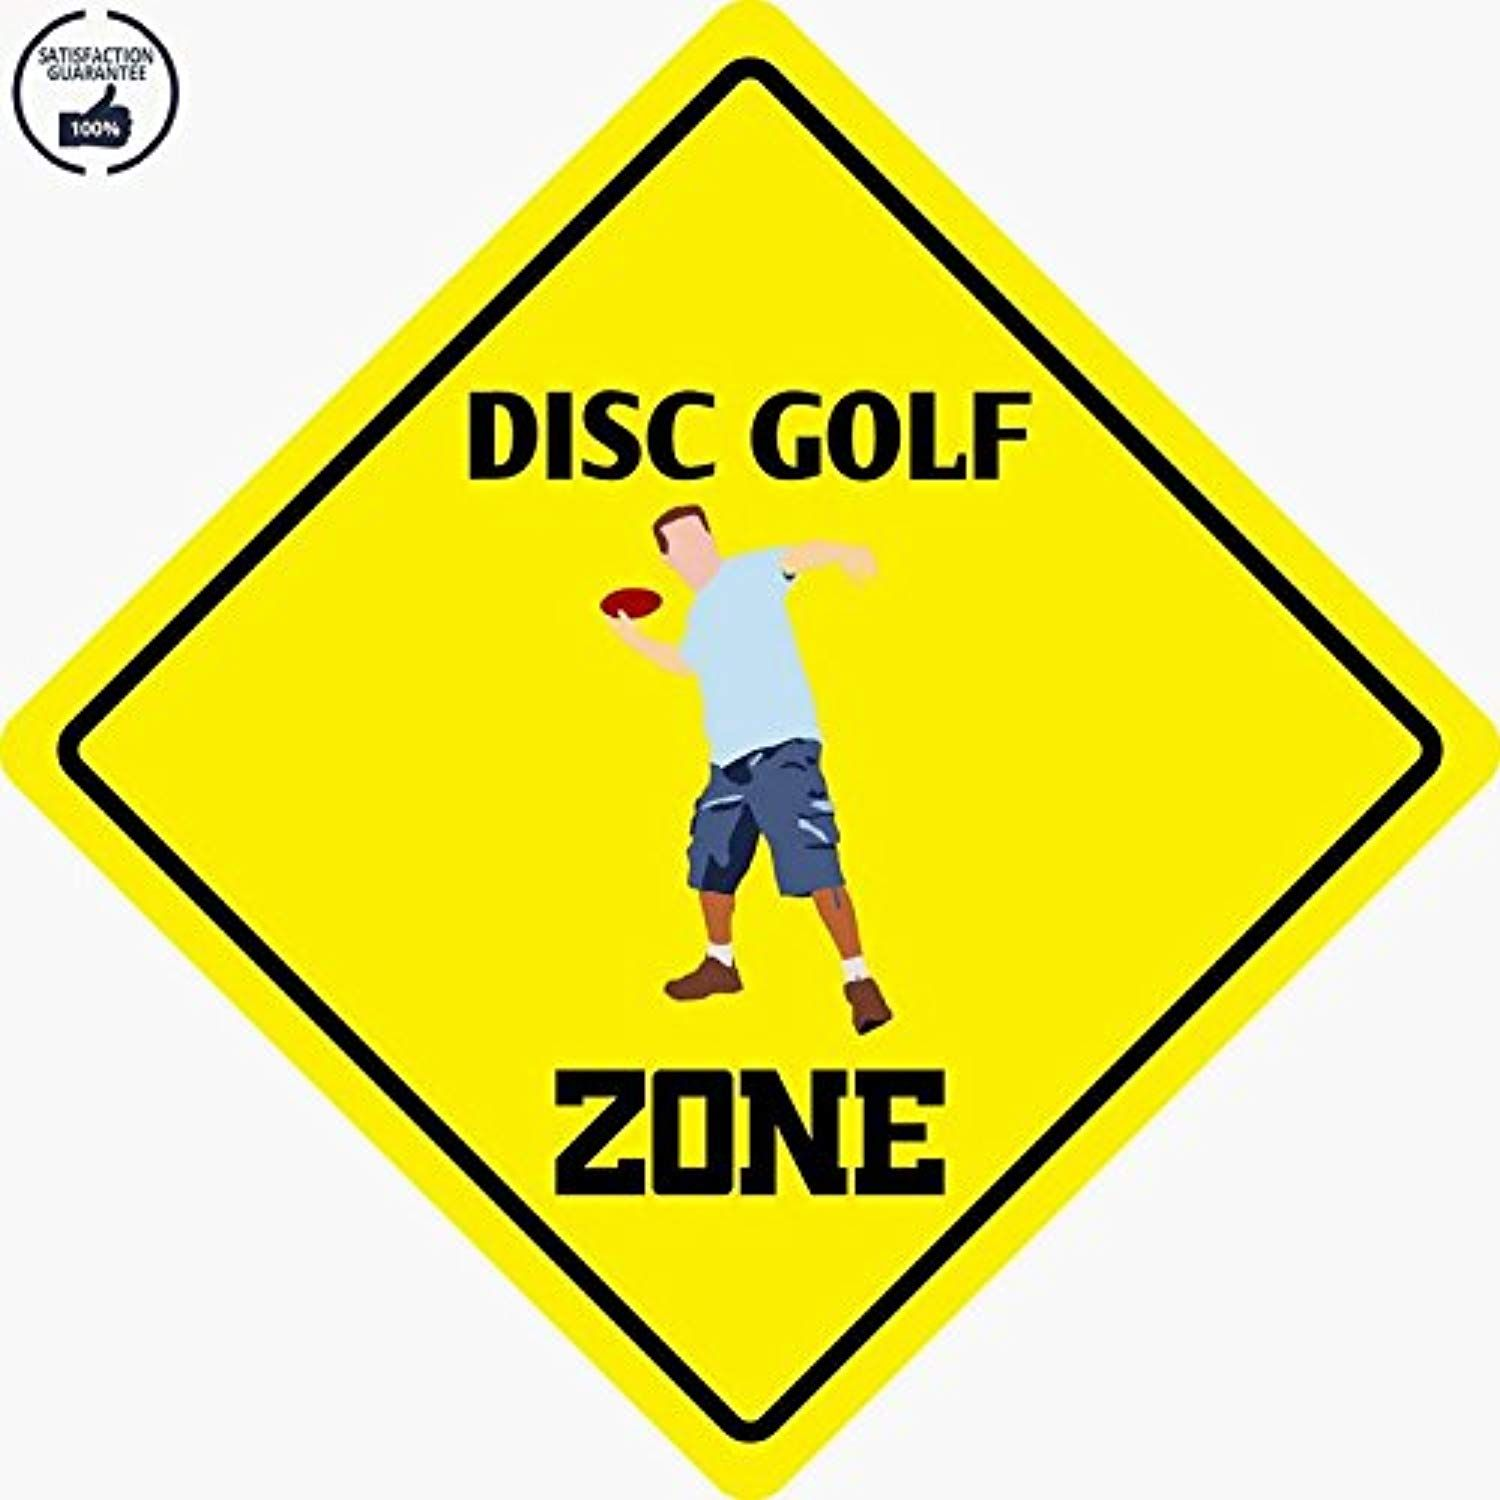 Disc golf zone funny aluminum metal plate gift sign